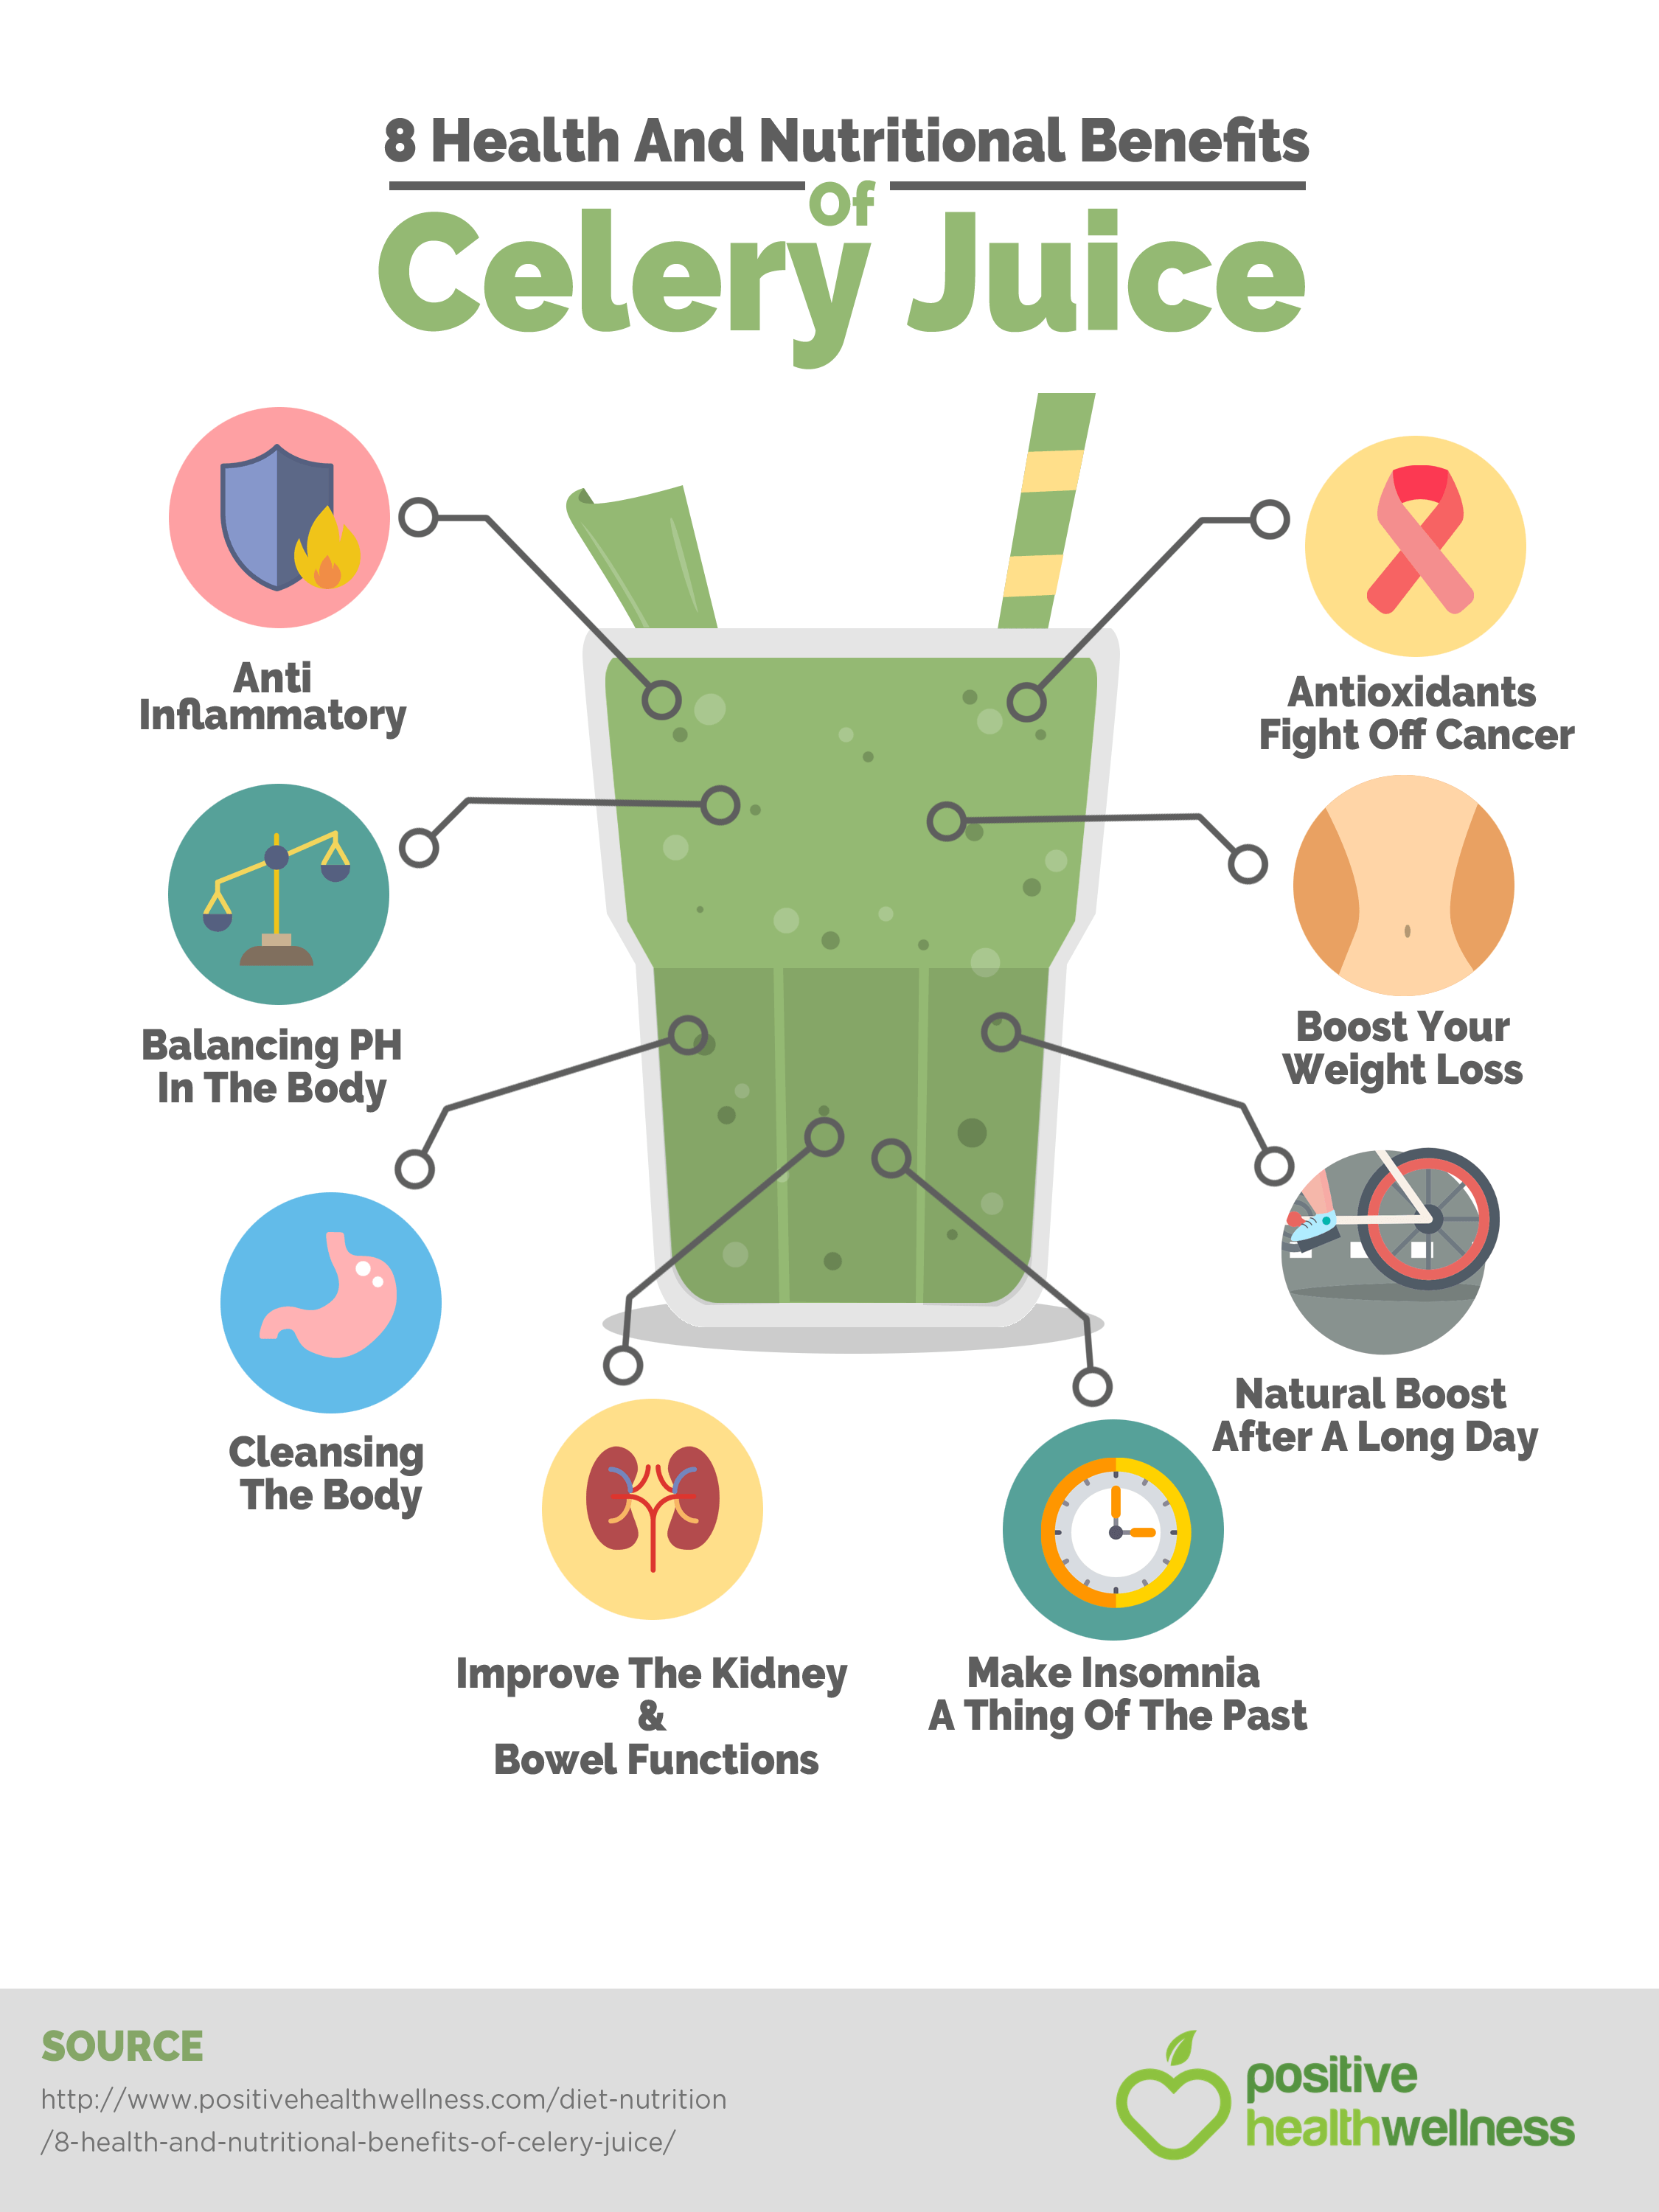 8 Health And Nutritional Benefits Of Celery Juice